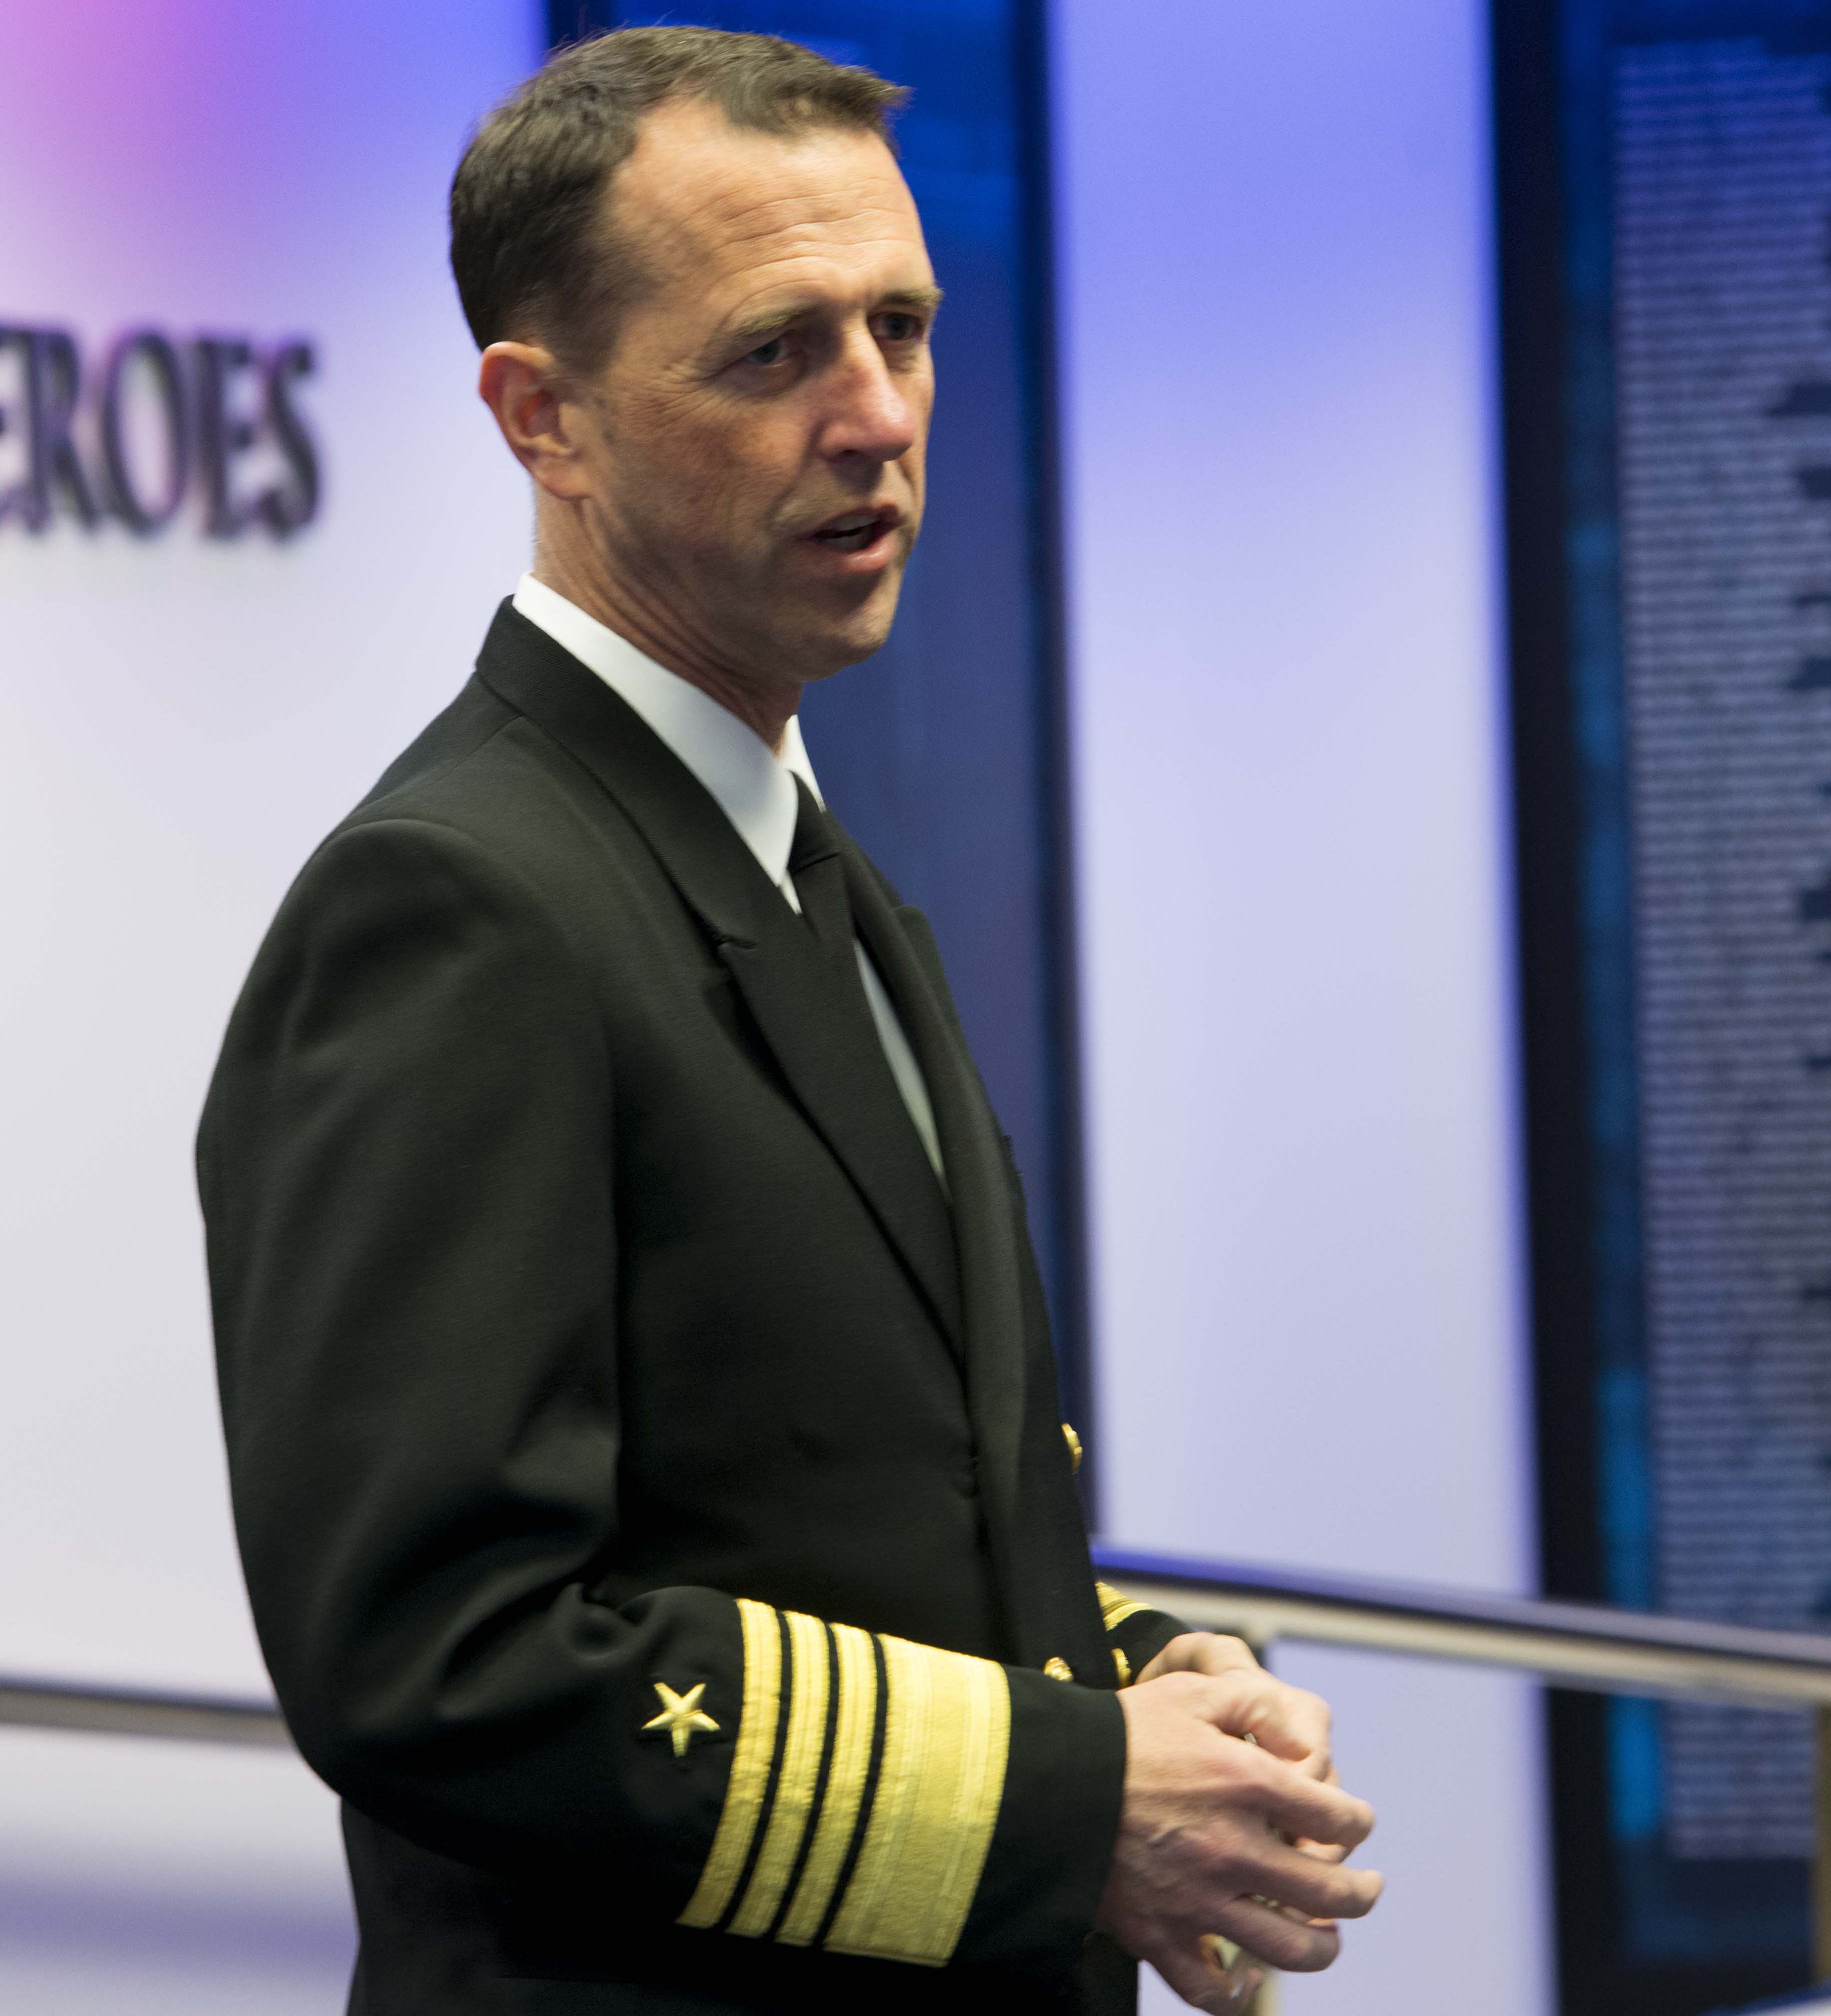 Chief of Naval Operations (CNO) Adm. John Richardson on Nov. 10, 2015. US Navy Photo